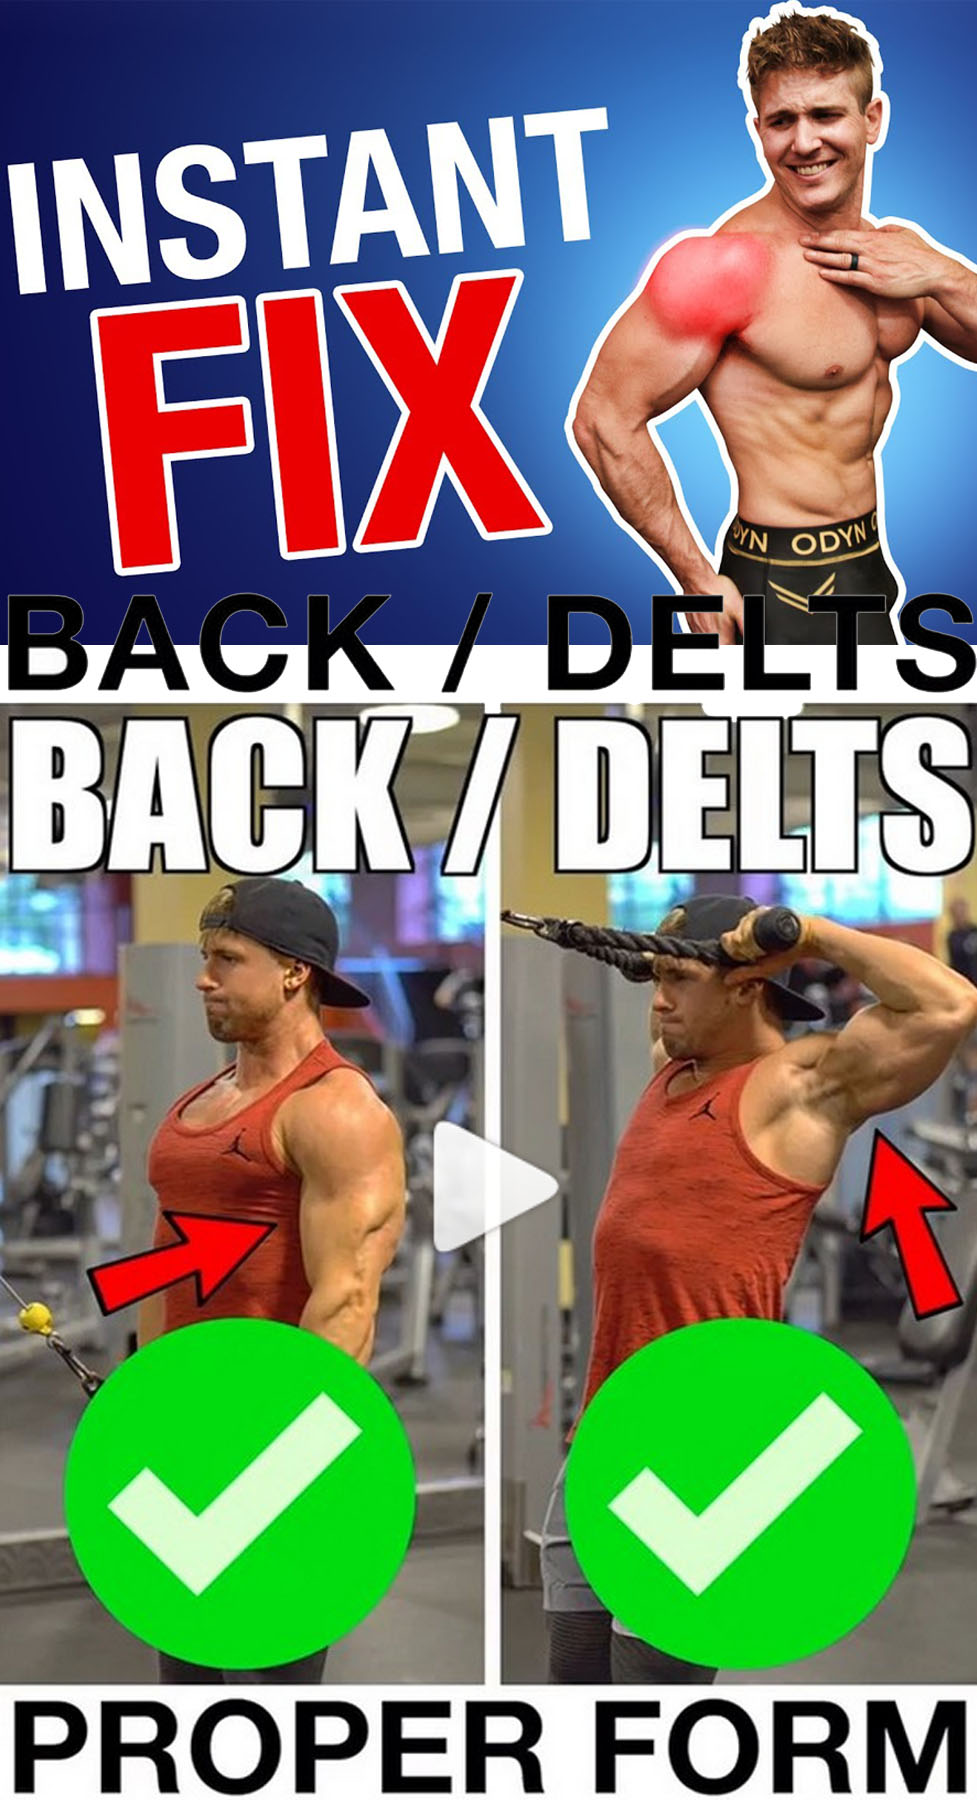 Back Delts Routine